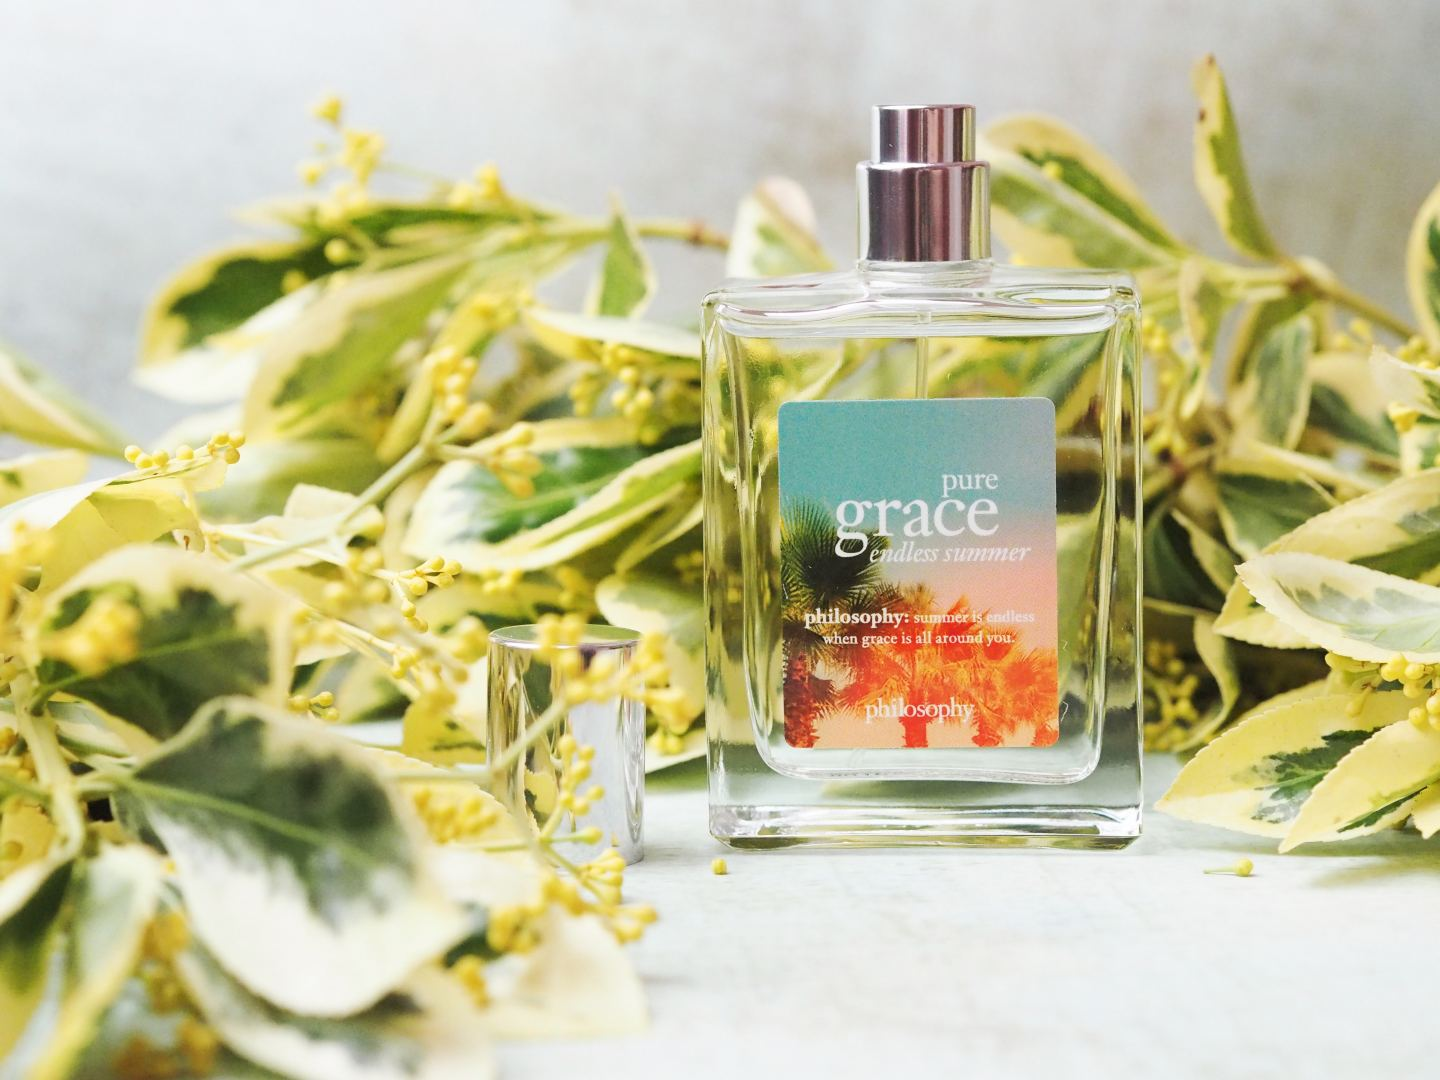 Perfume: Philosophy 'Pure Grace Endless Summer'